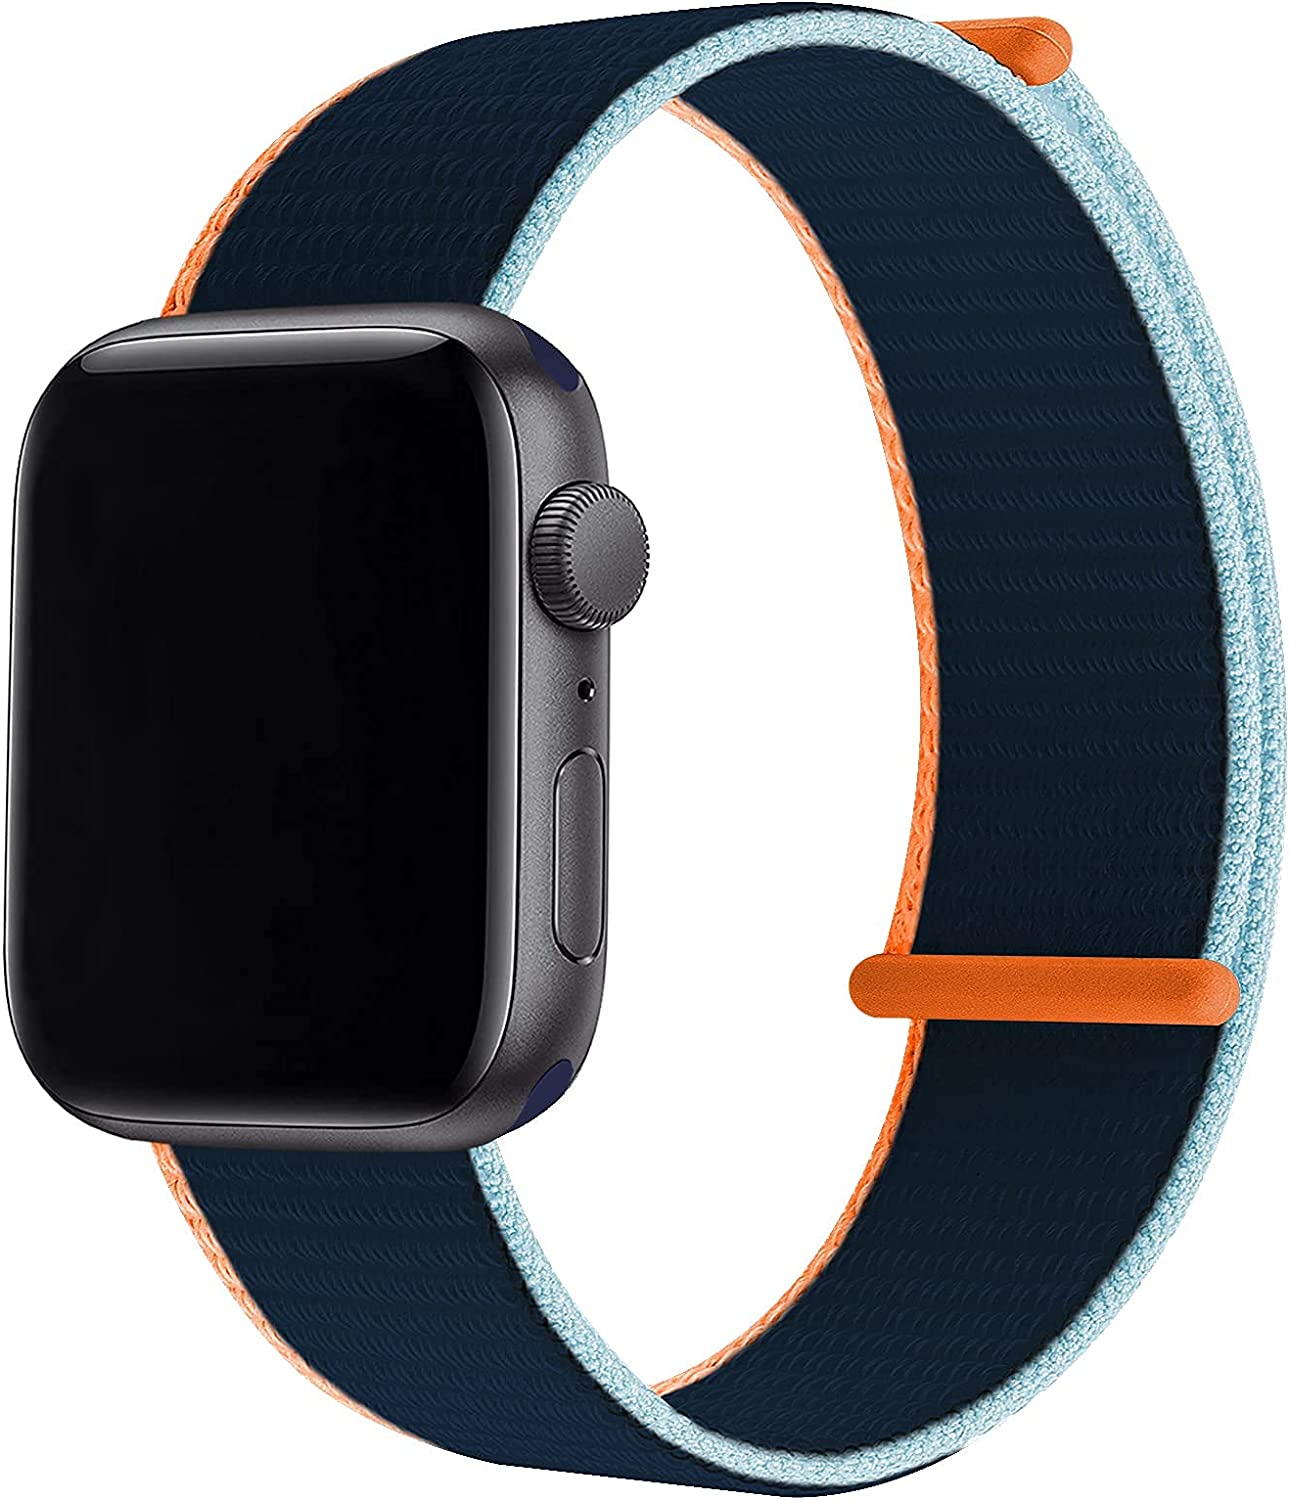 WETAL Velcro Nylon Strap Compatible with Apple Watch Sports Band 44mm 40mm 42mm 38mm, Soft Adjustable Lightweight Replacement Wristbands for iWatch Series 6 5 4 3 2 1 SE